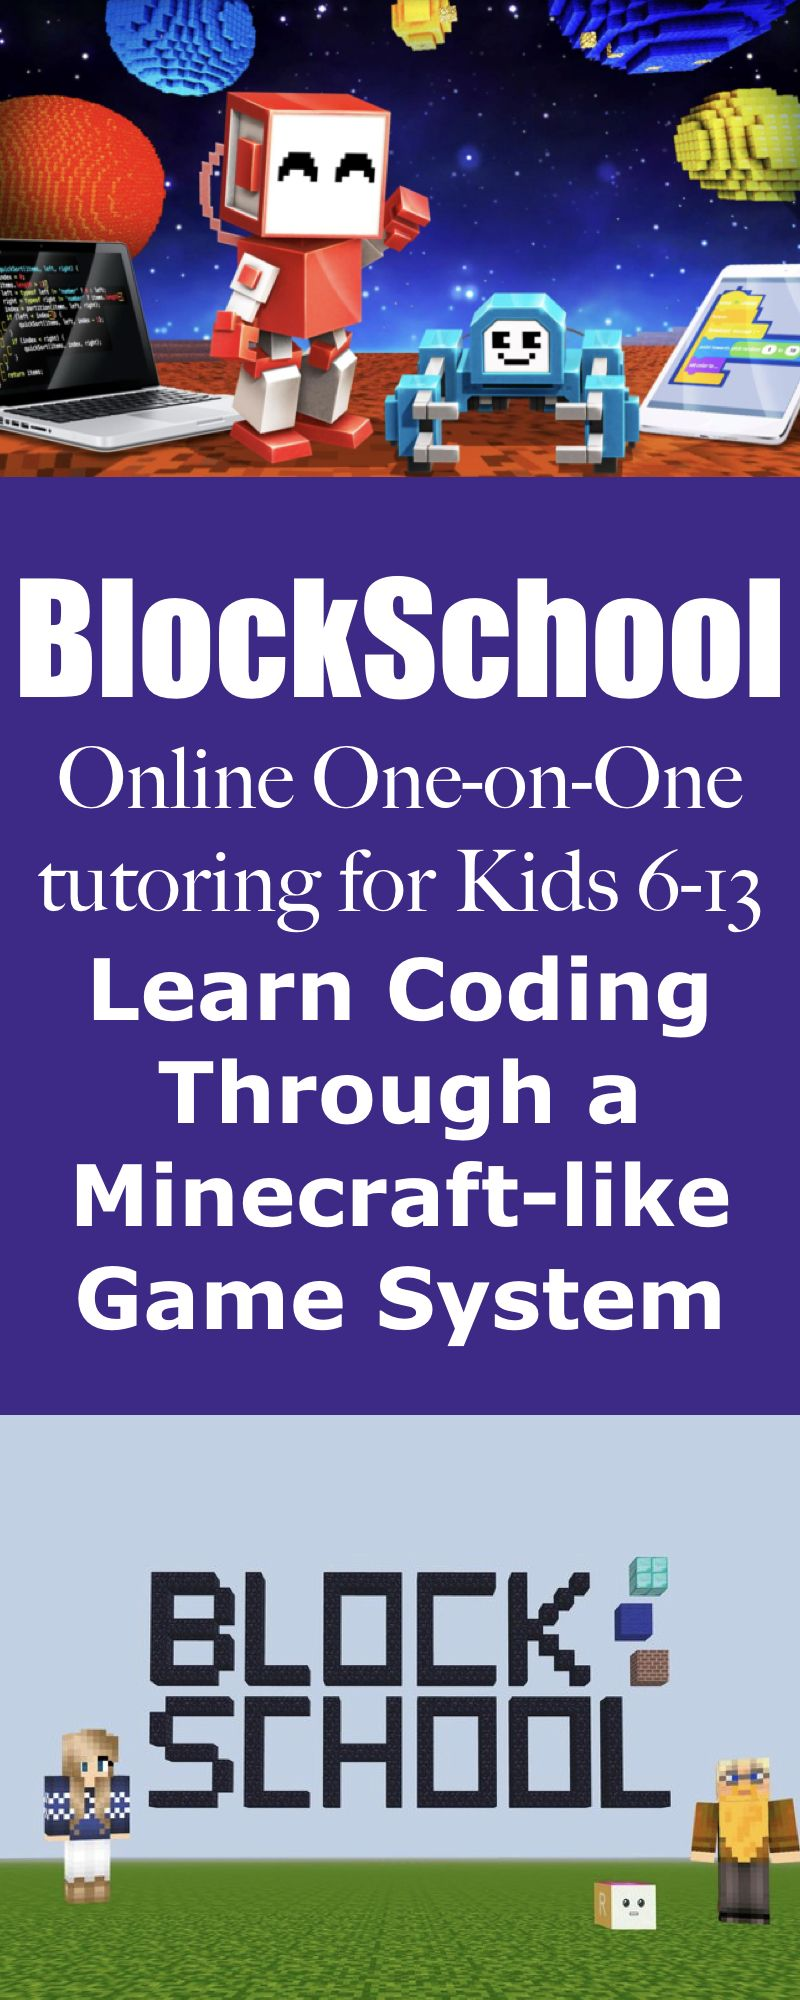 BlockSchool Review Online Coding Course for Kids Middle